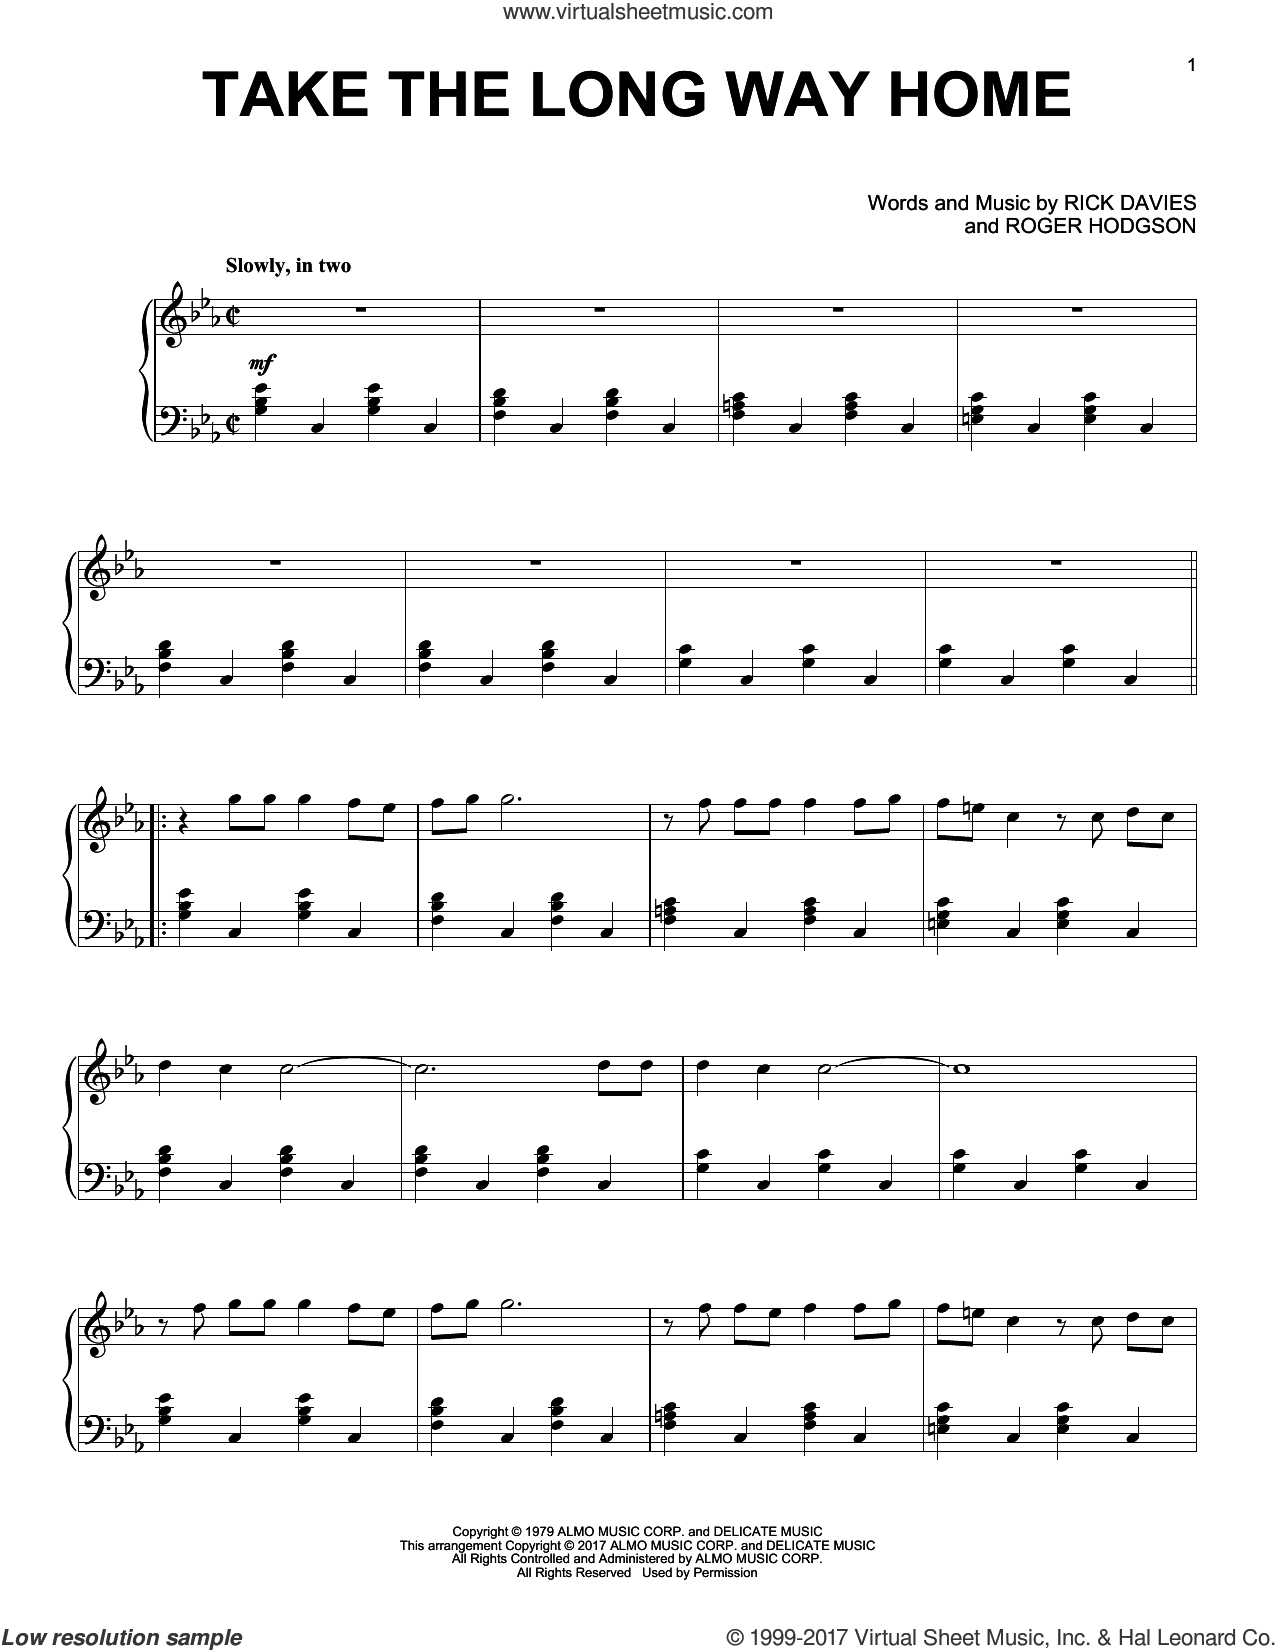 Take The Long Way Home sheet music for piano solo by Supertramp, Rick Davies and Roger Hodgson, intermediate skill level